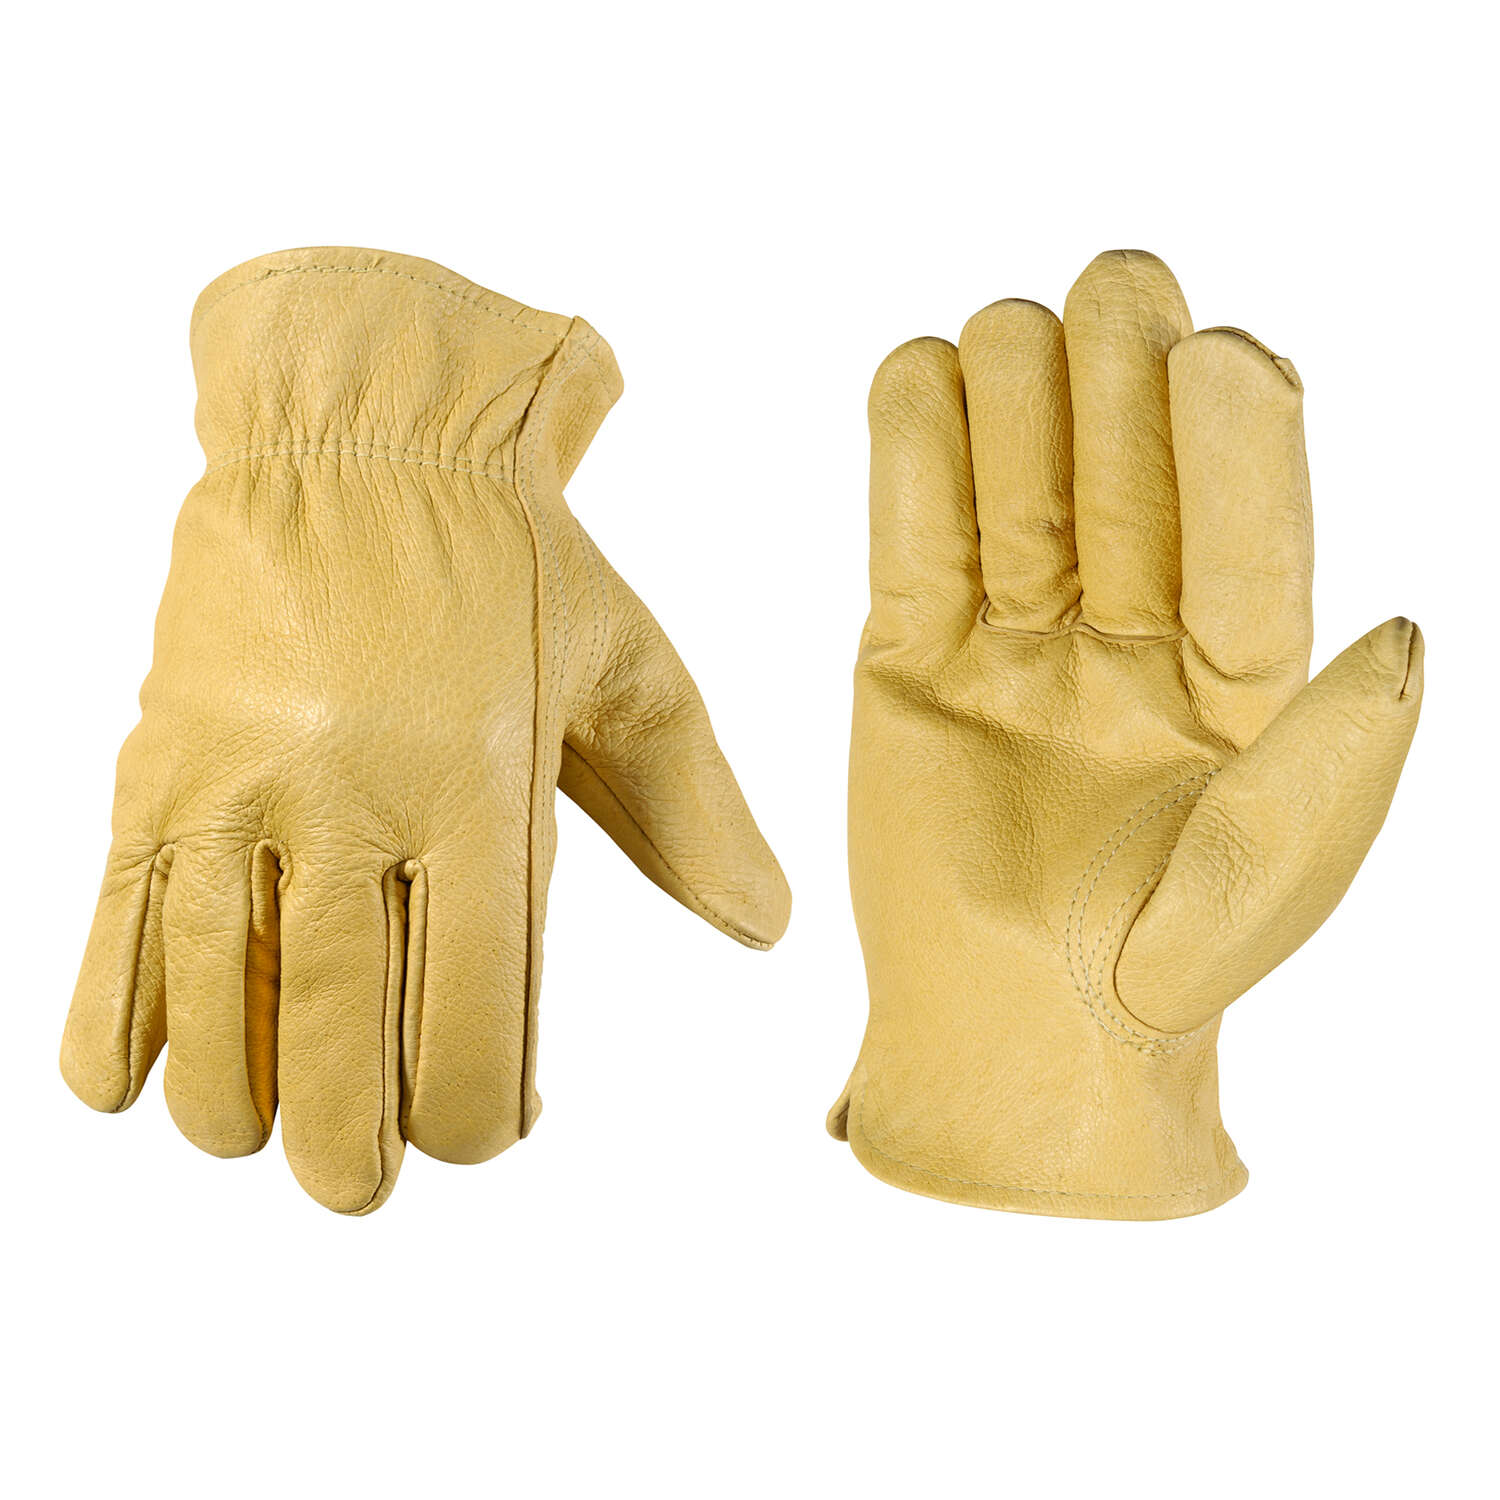 Wells Lamont  Men's  Leather  Driver  Work Gloves  XL  Bucko